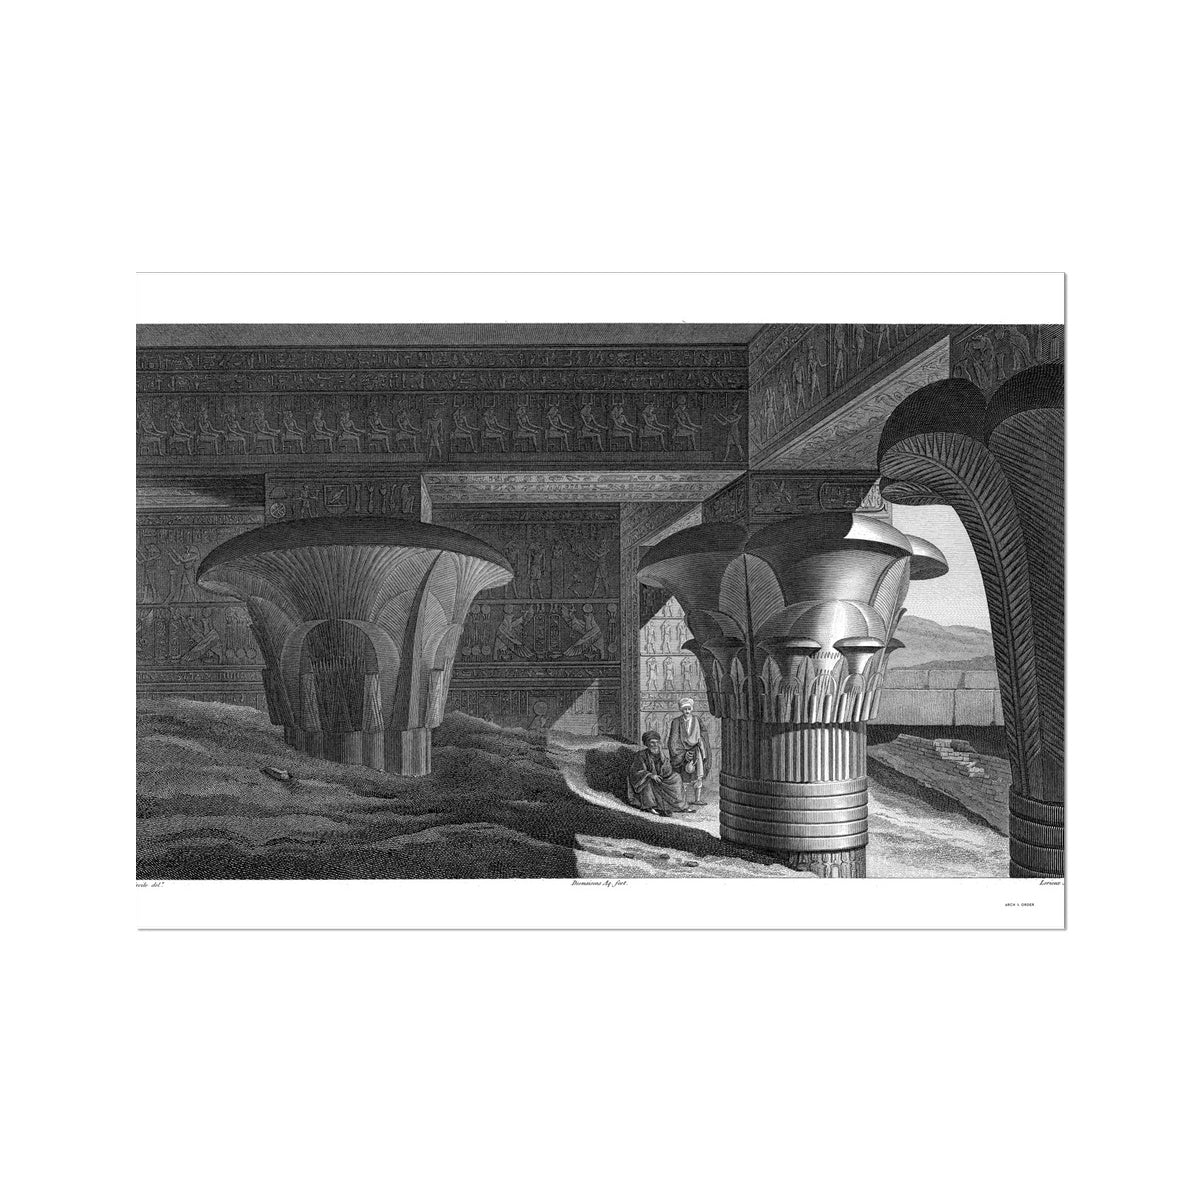 Temple of Horus Portico Interior - Edfu Egypt -  Etching Paper Print